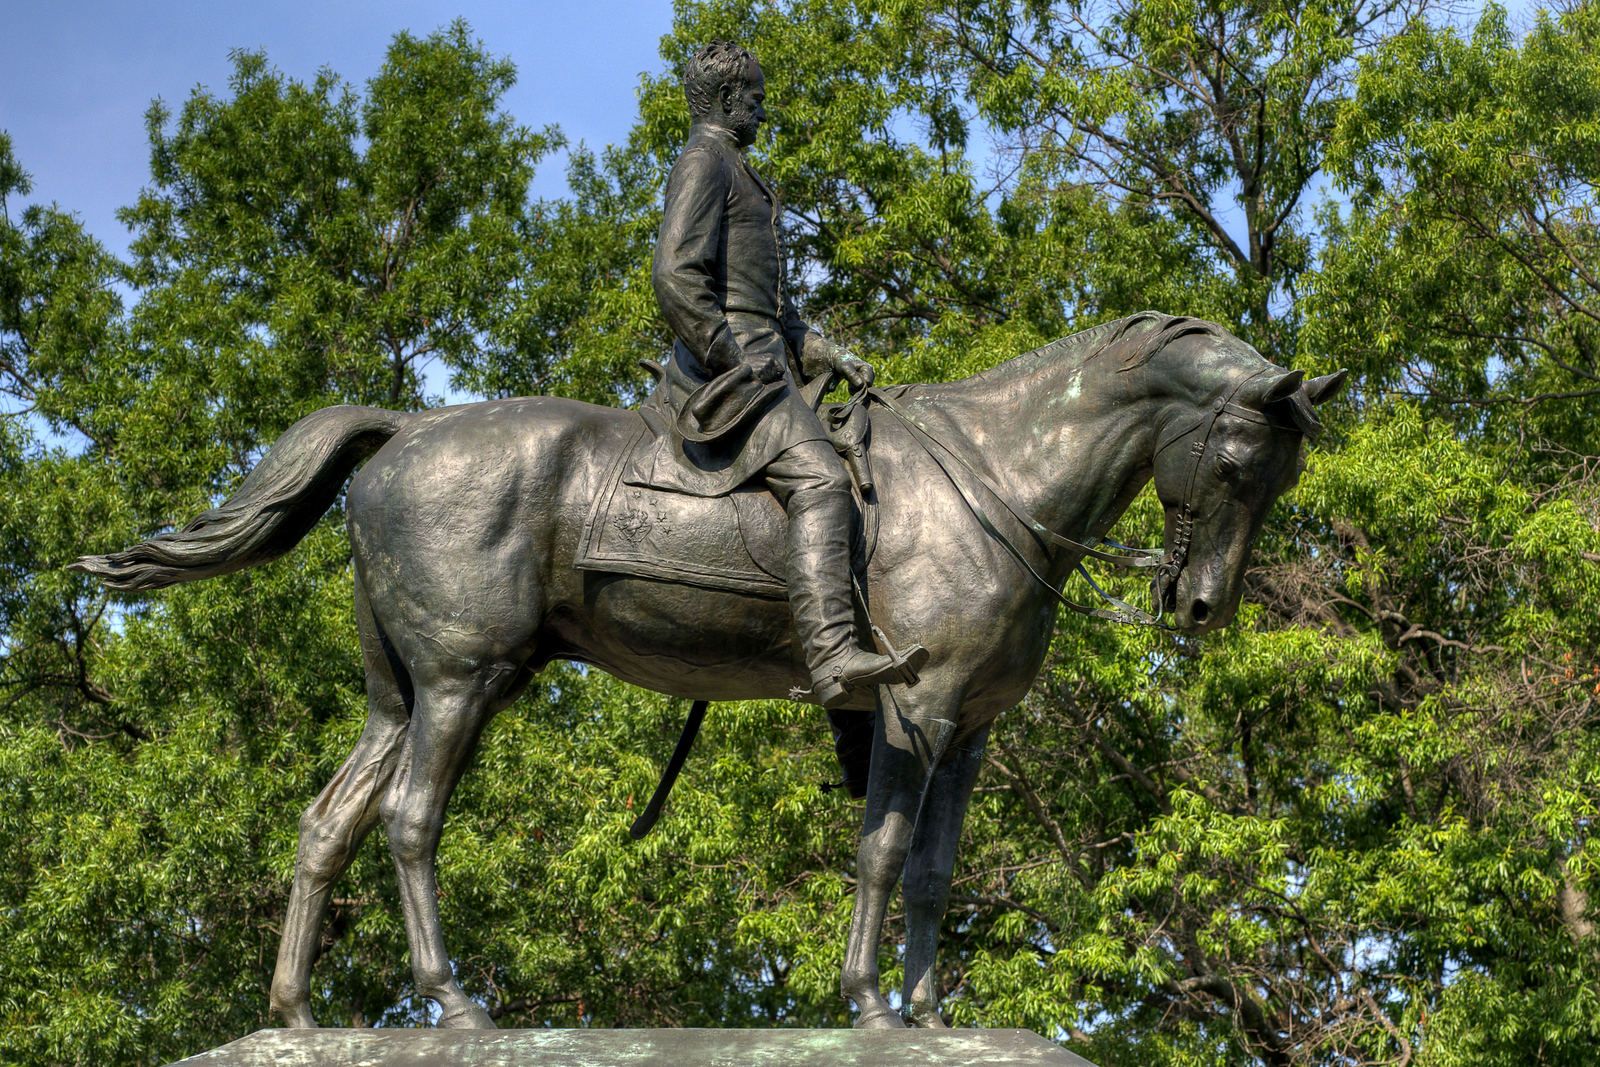 The bronze statue at the General William T. Sherman Memorial in President's Park in Washington, DC, on Saturday, August 16, 2014. Copyright 2014 Jason Barnette